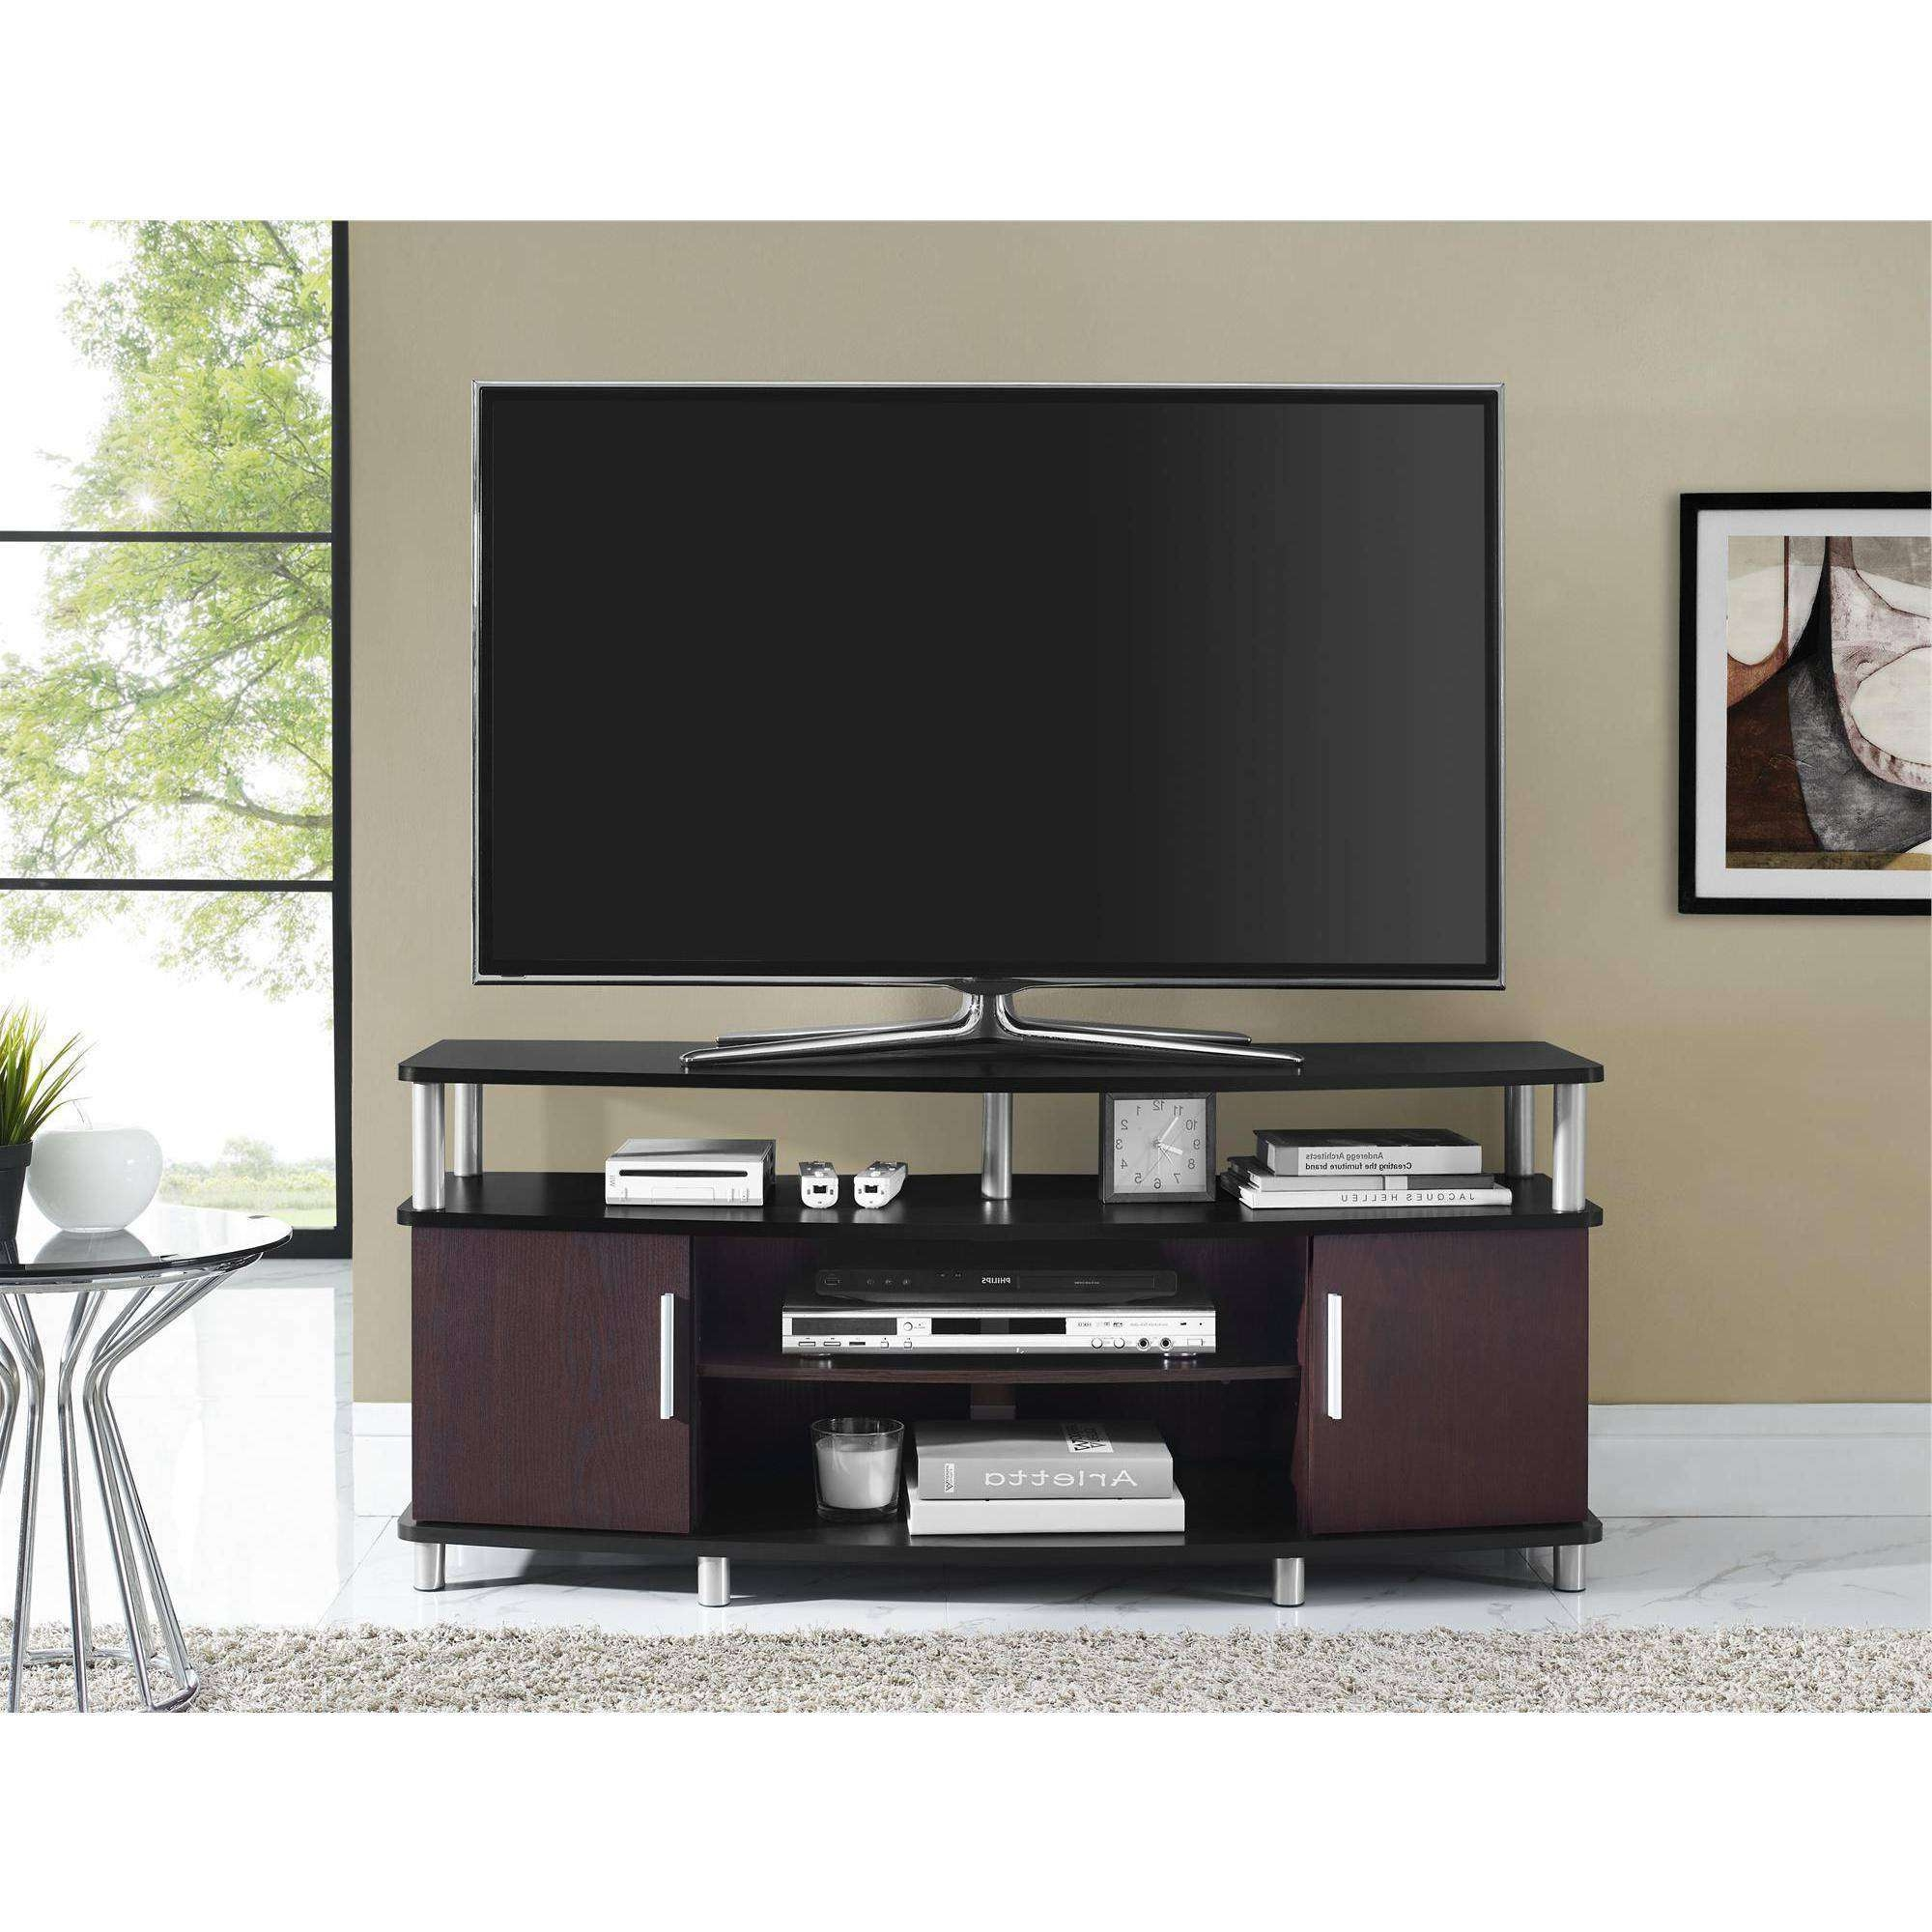 Flat Screen Tv Stands With Mount Furnitures Modern For Inch With Regard To Modern Tv Stands For Flat Screens (View 5 of 15)